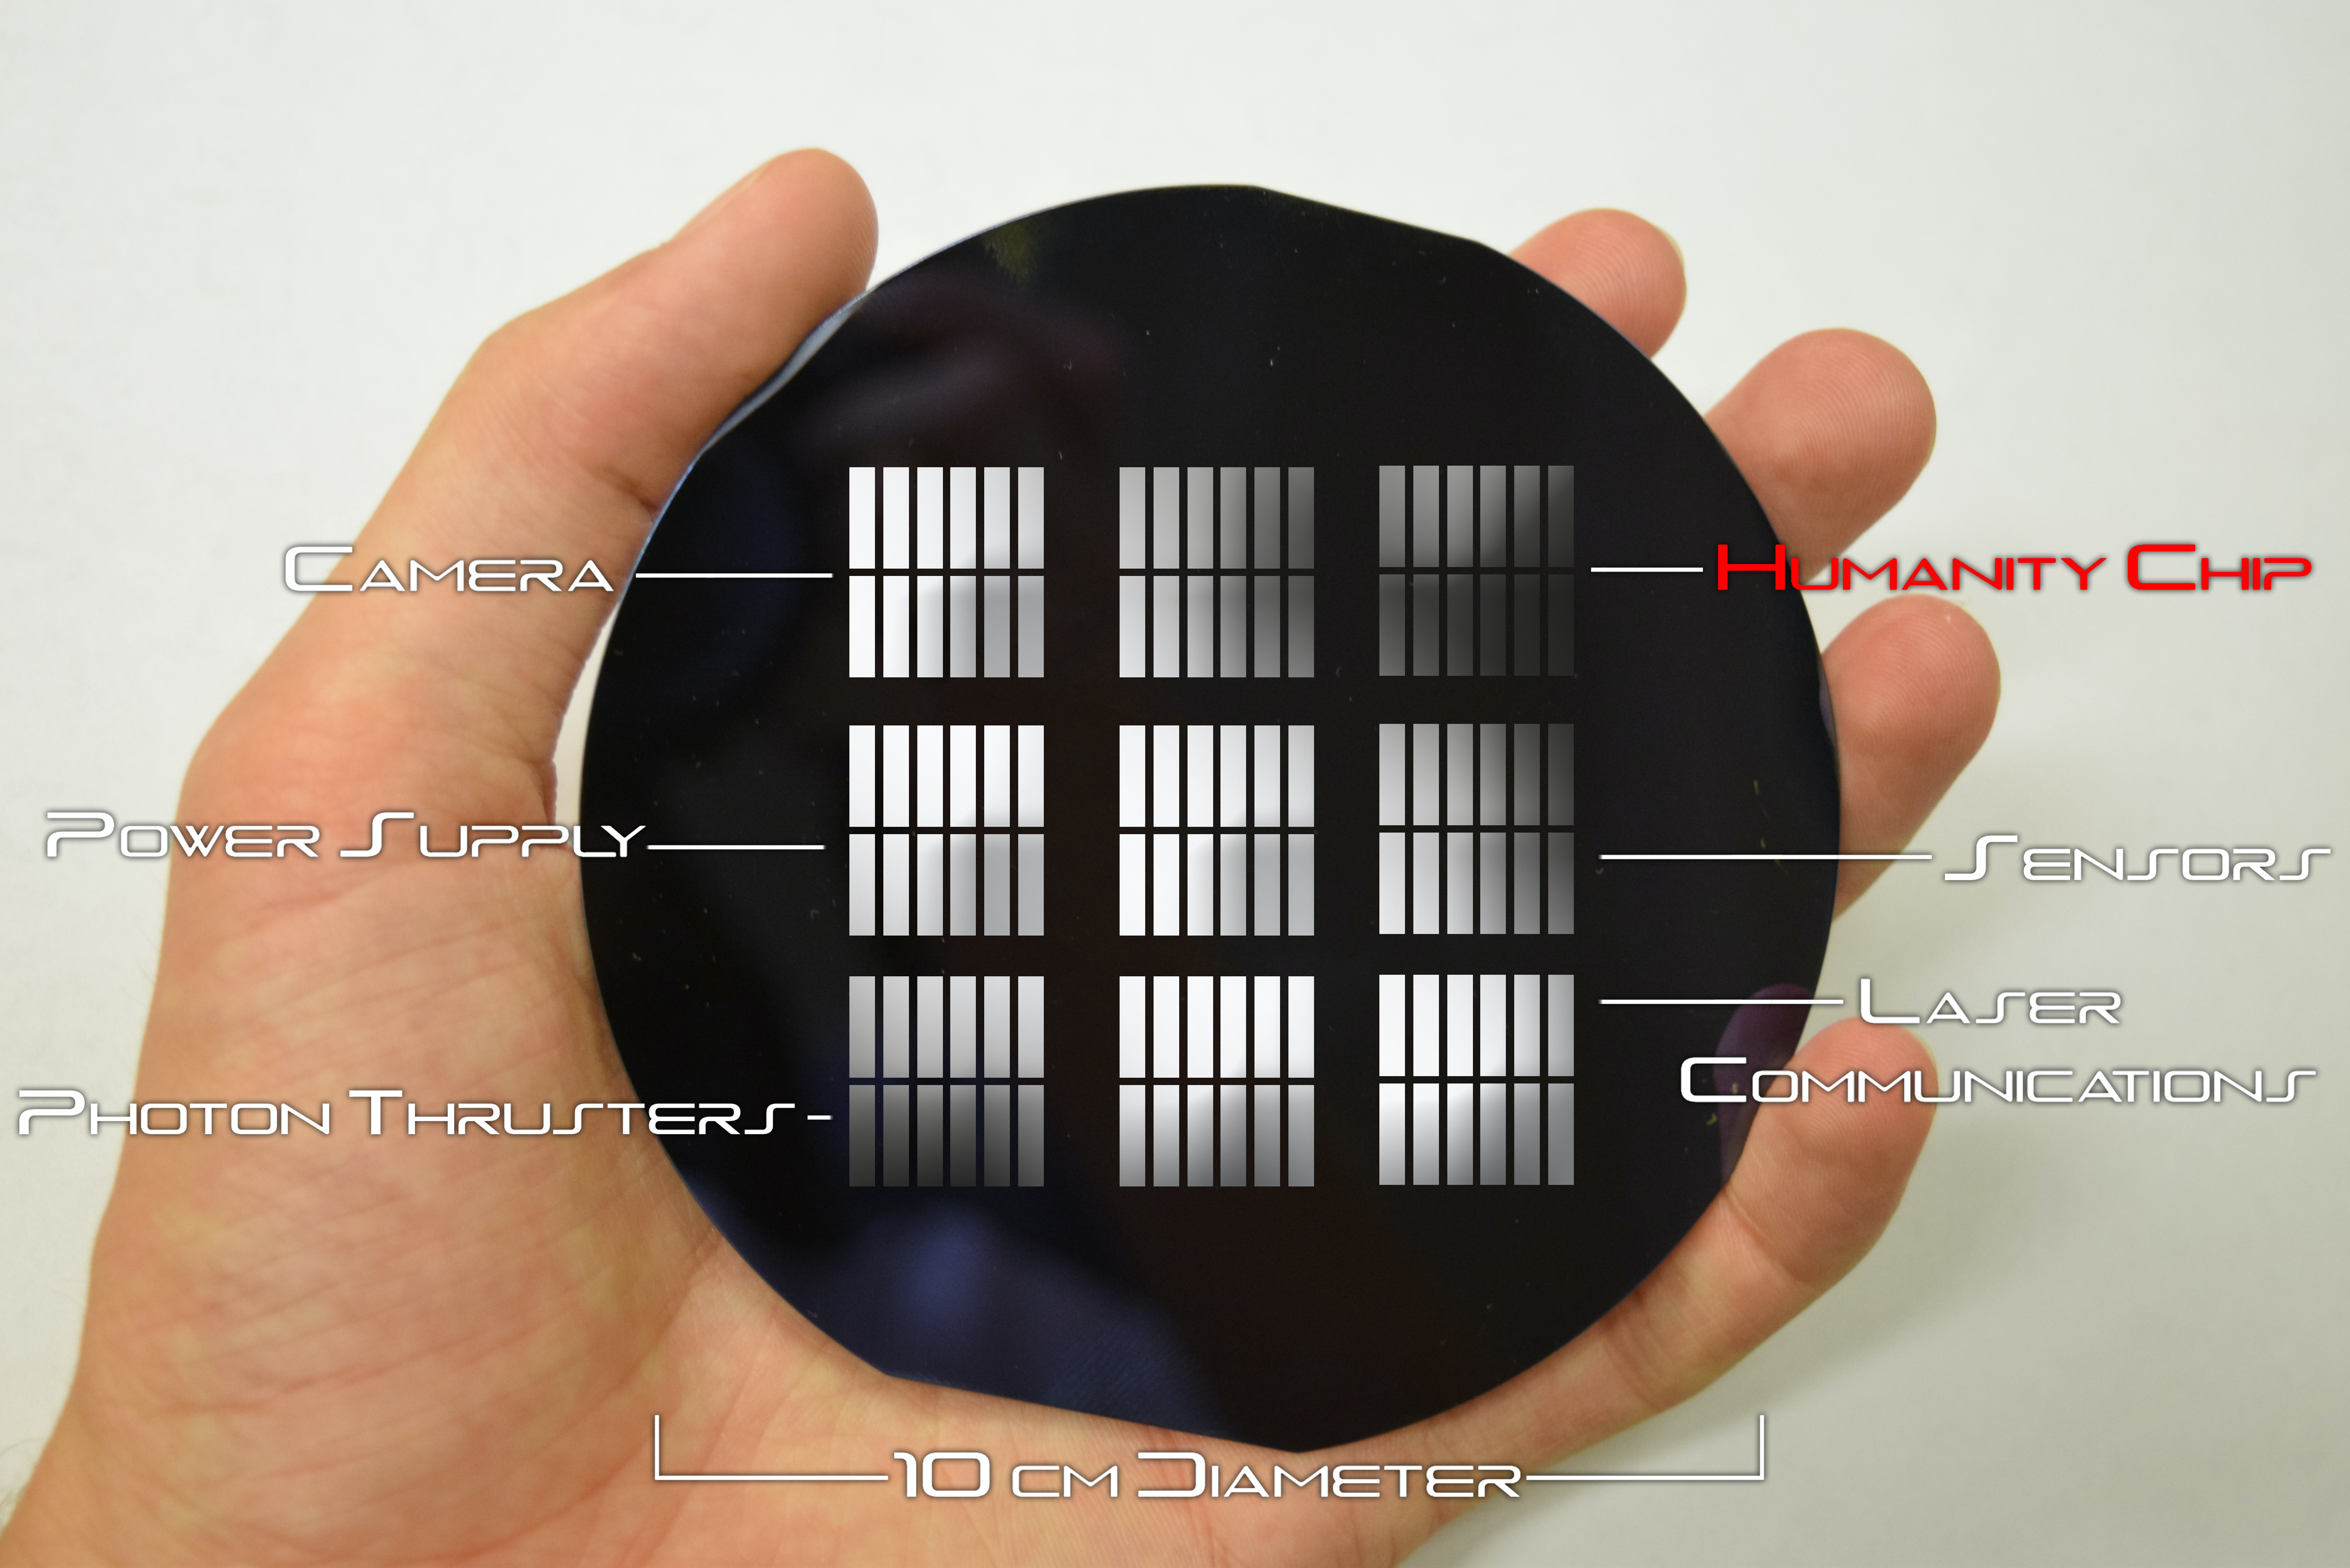 The Humanity Chip